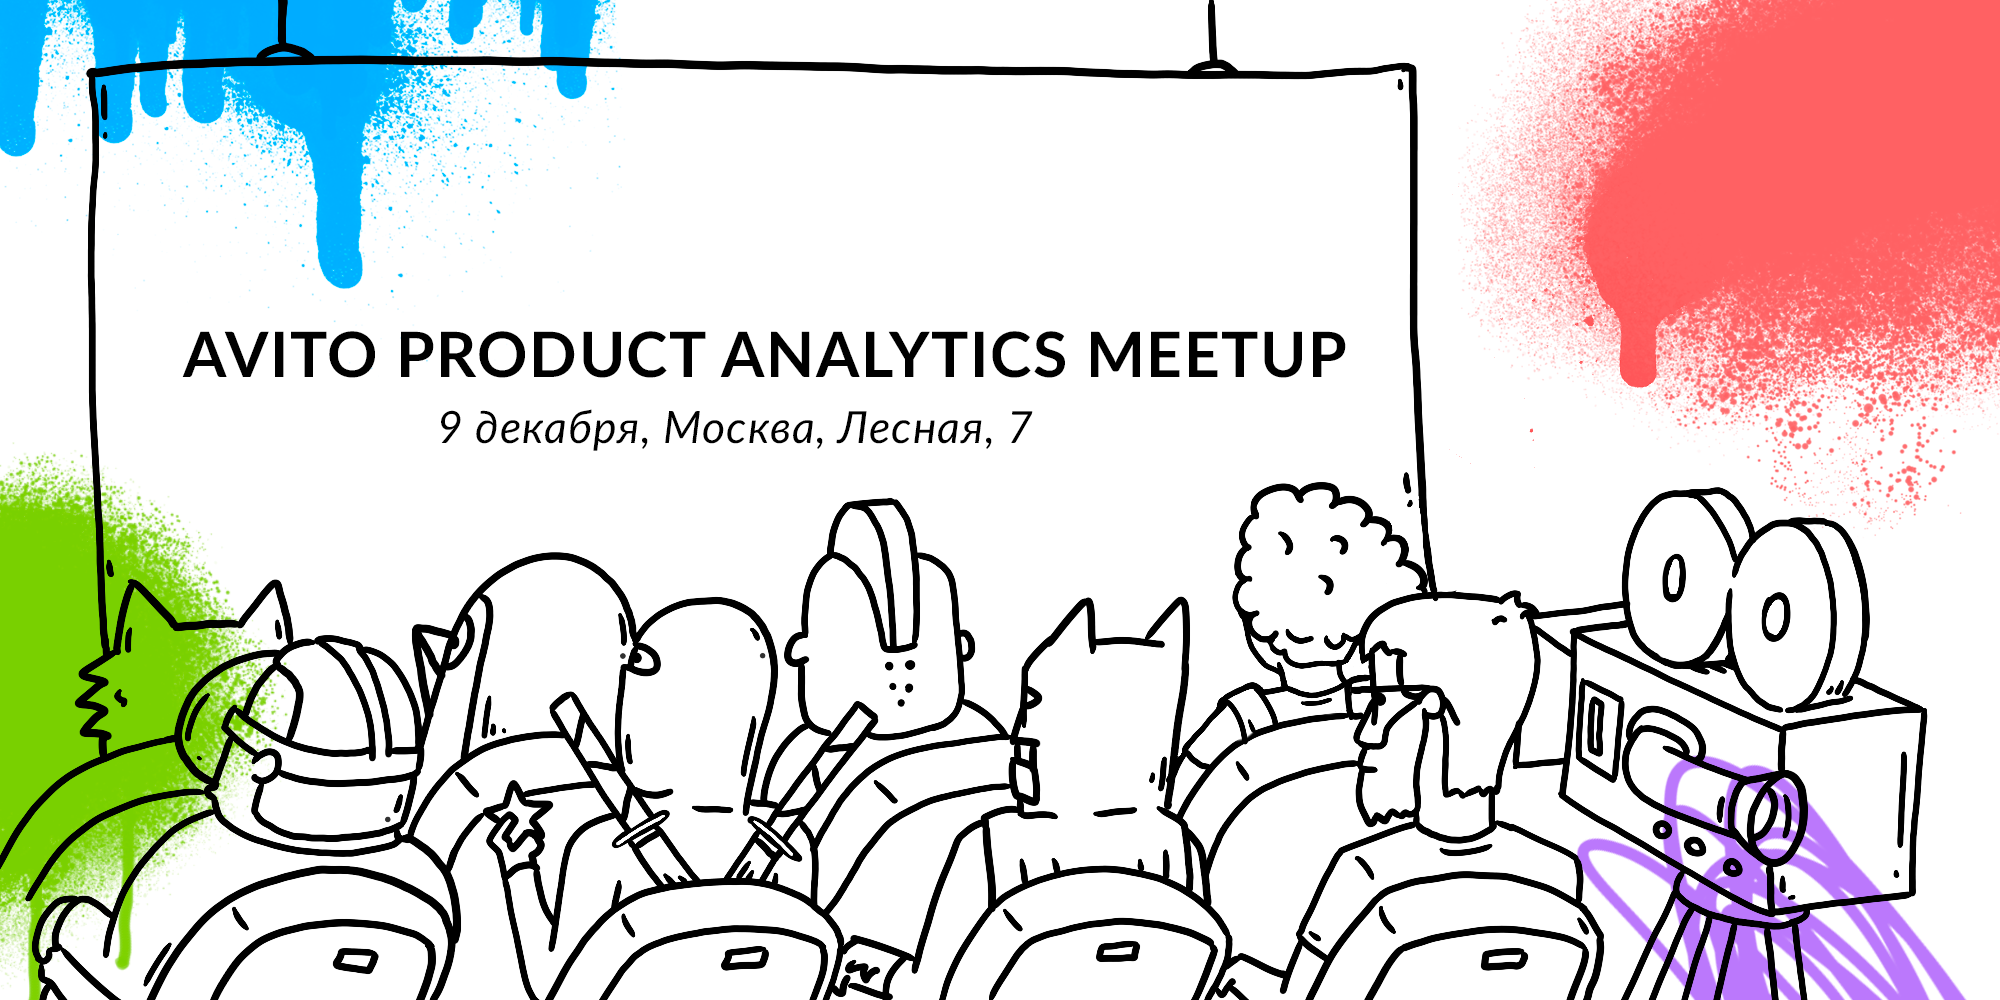 Avito Product Analytics Meetup 9 декабря: анонс - 1